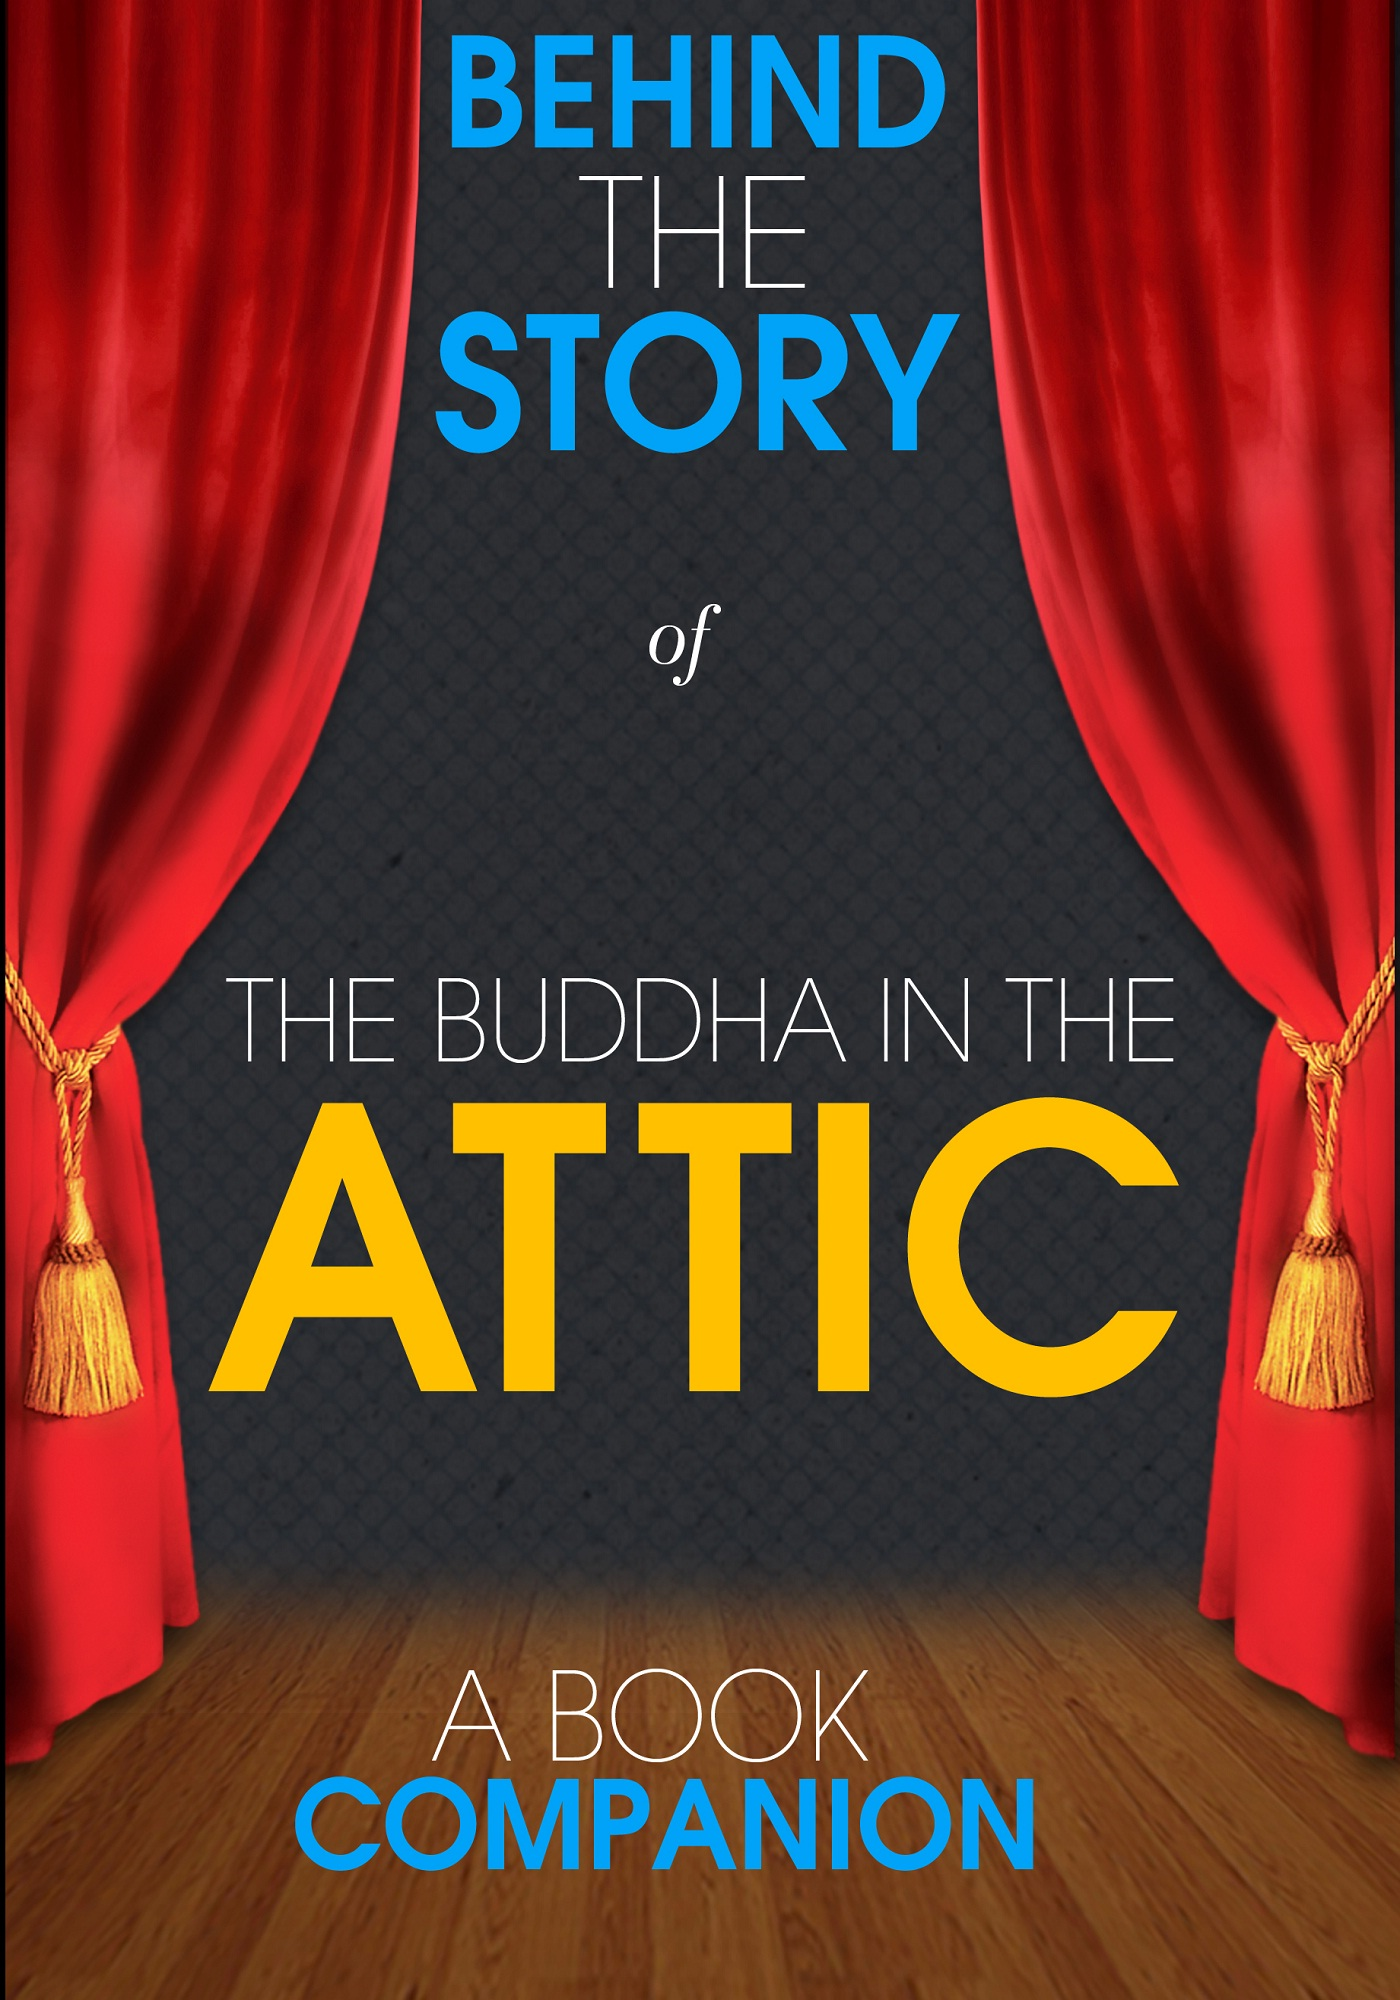 Behind the Story - The Buddha in the Attic - Behind the Story (A Book Companion)